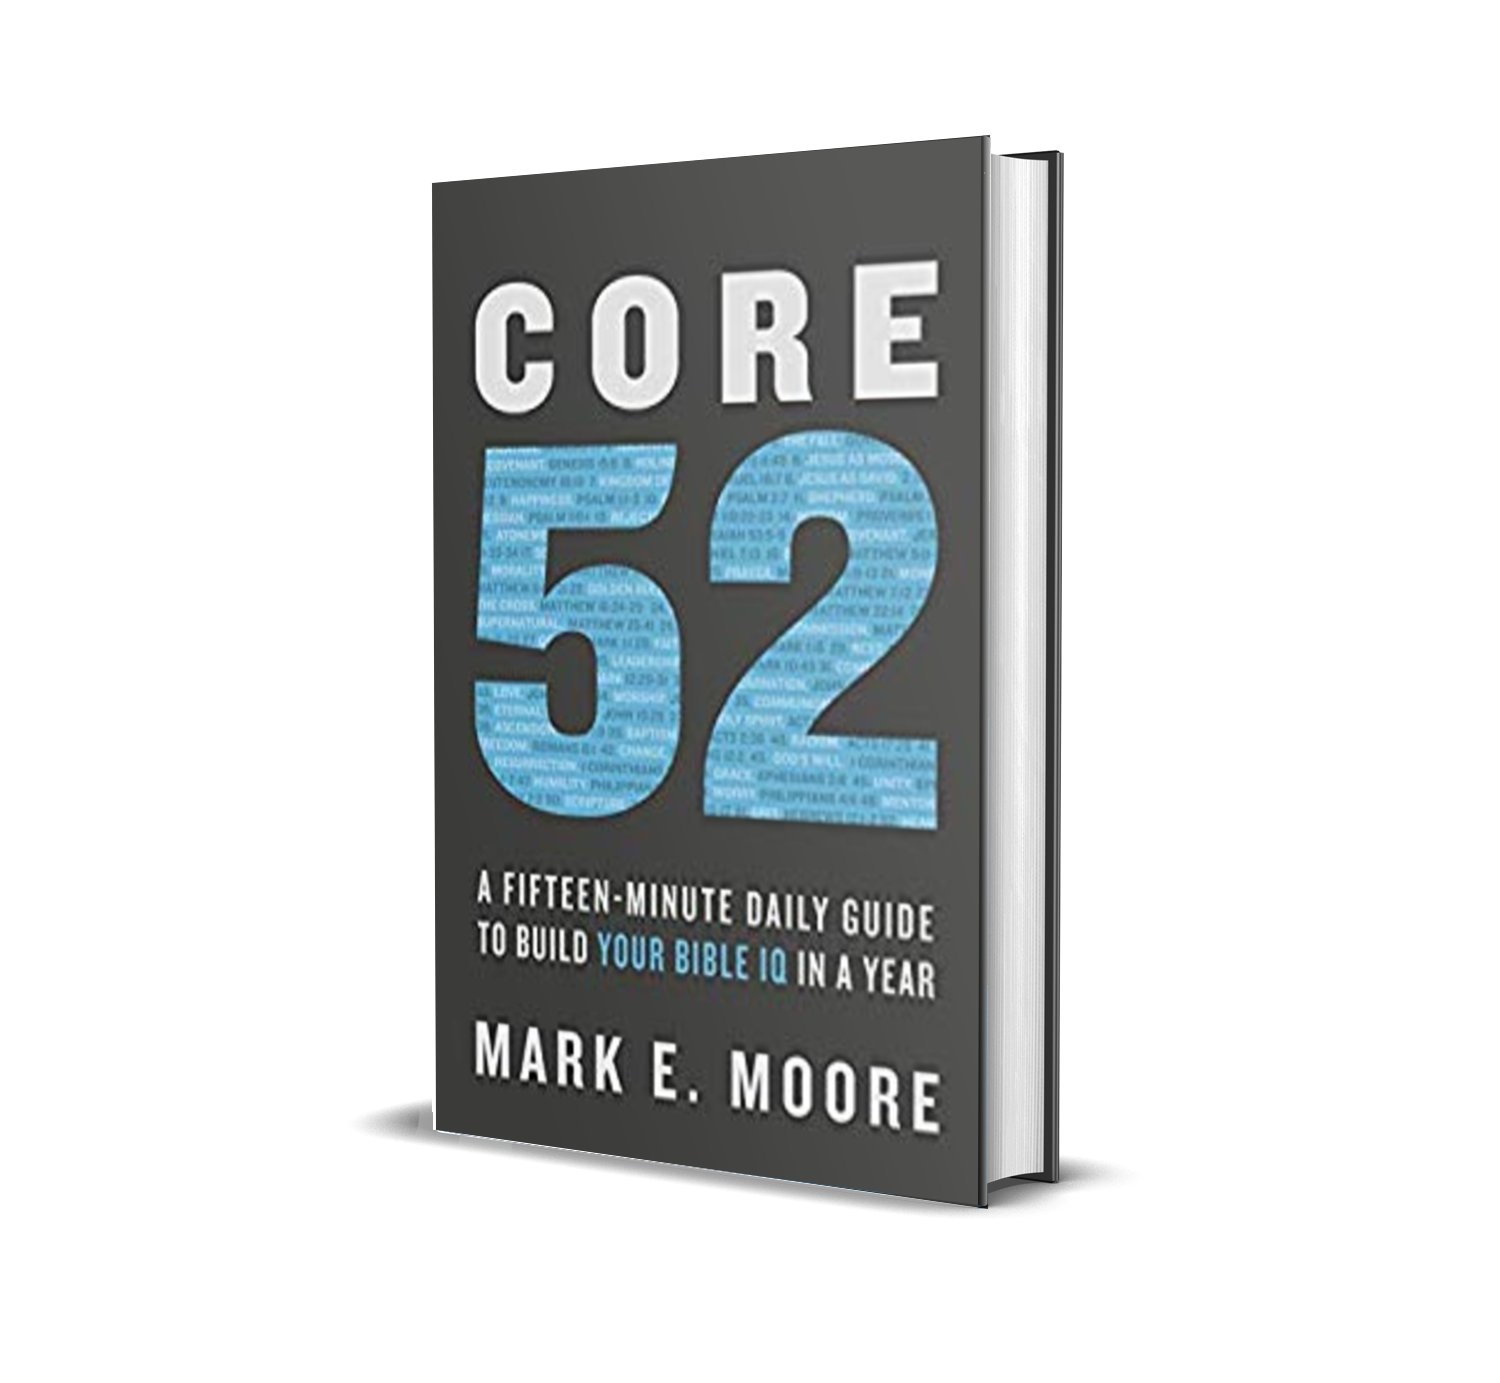 Core 52: A Fifteen-Minute Daily Guide to Build Your Bible IQ in a Year by Mark E. Moore